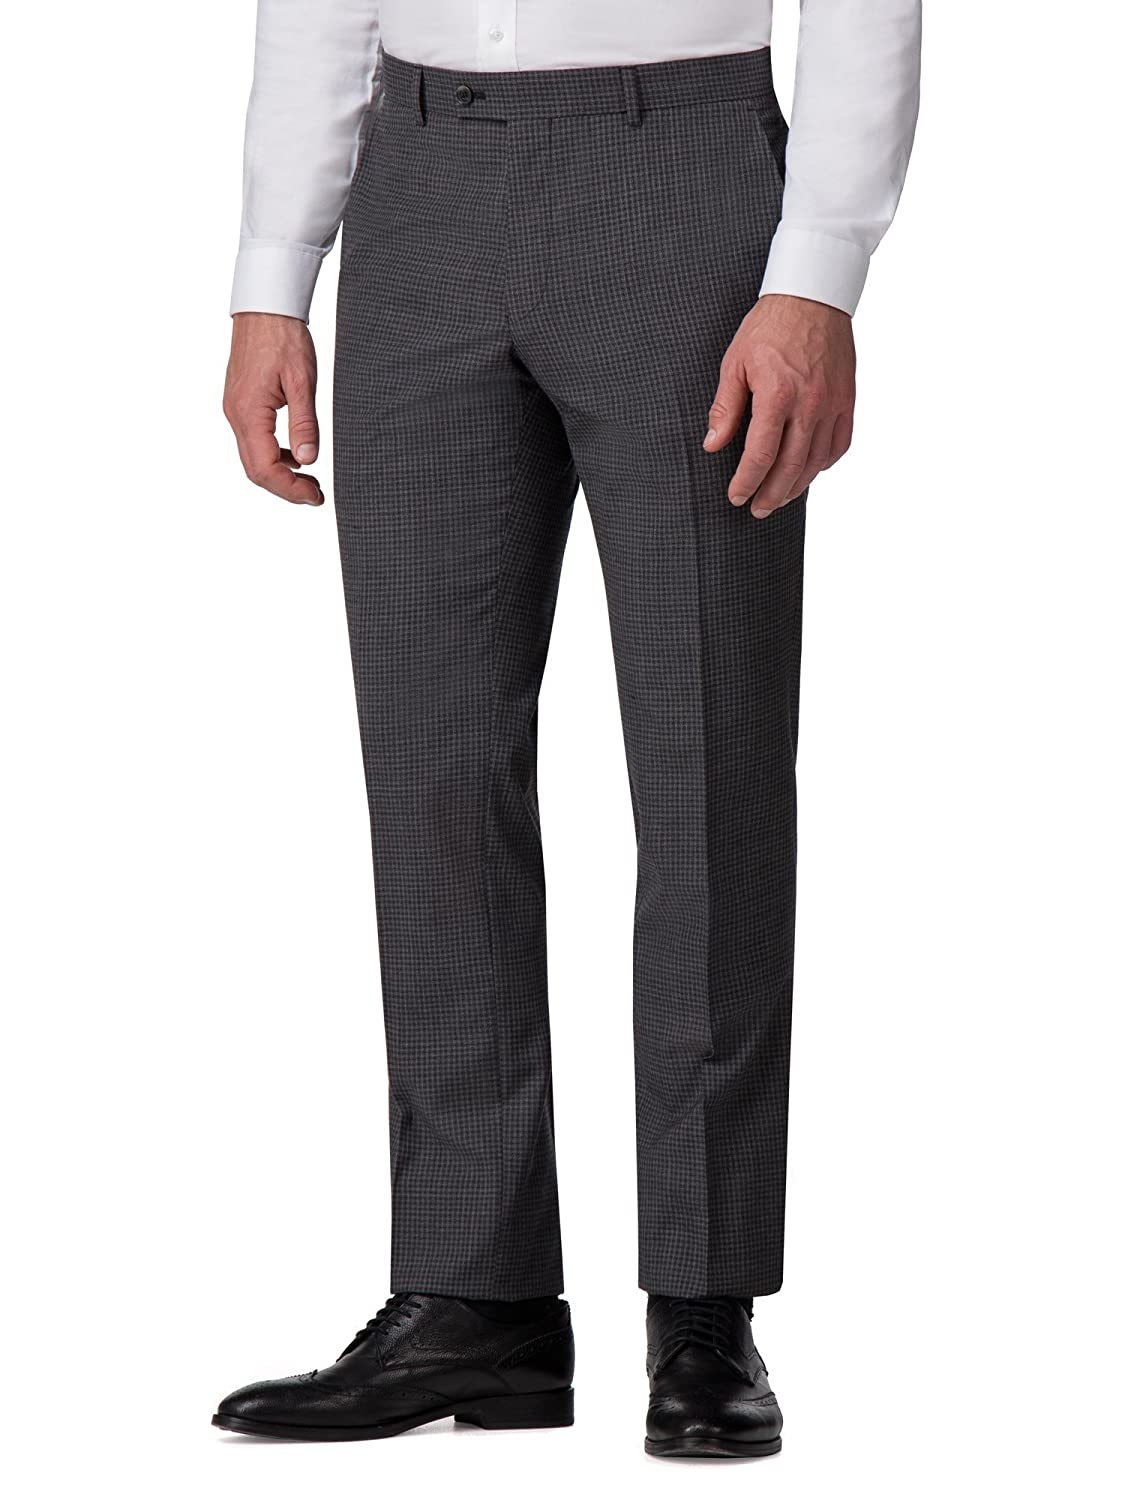 Ben Sherman Charcoal Jaspe Gingham Tailored Fit Trousers 0049603 by Suit Direct